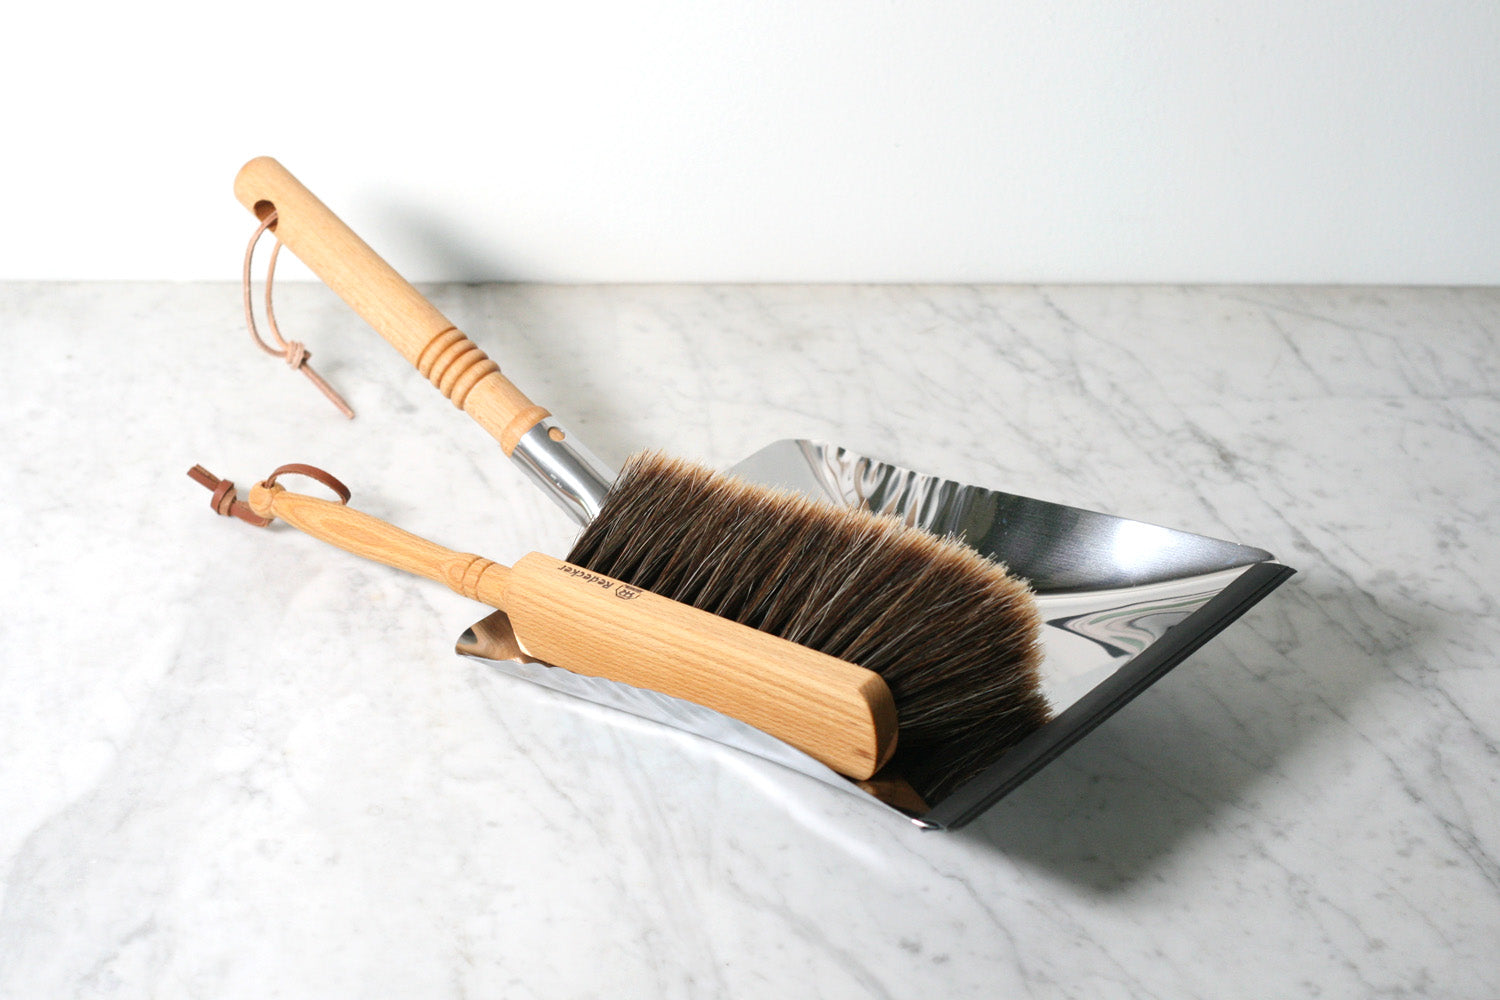 Burstenhaus Redecker Dustpan